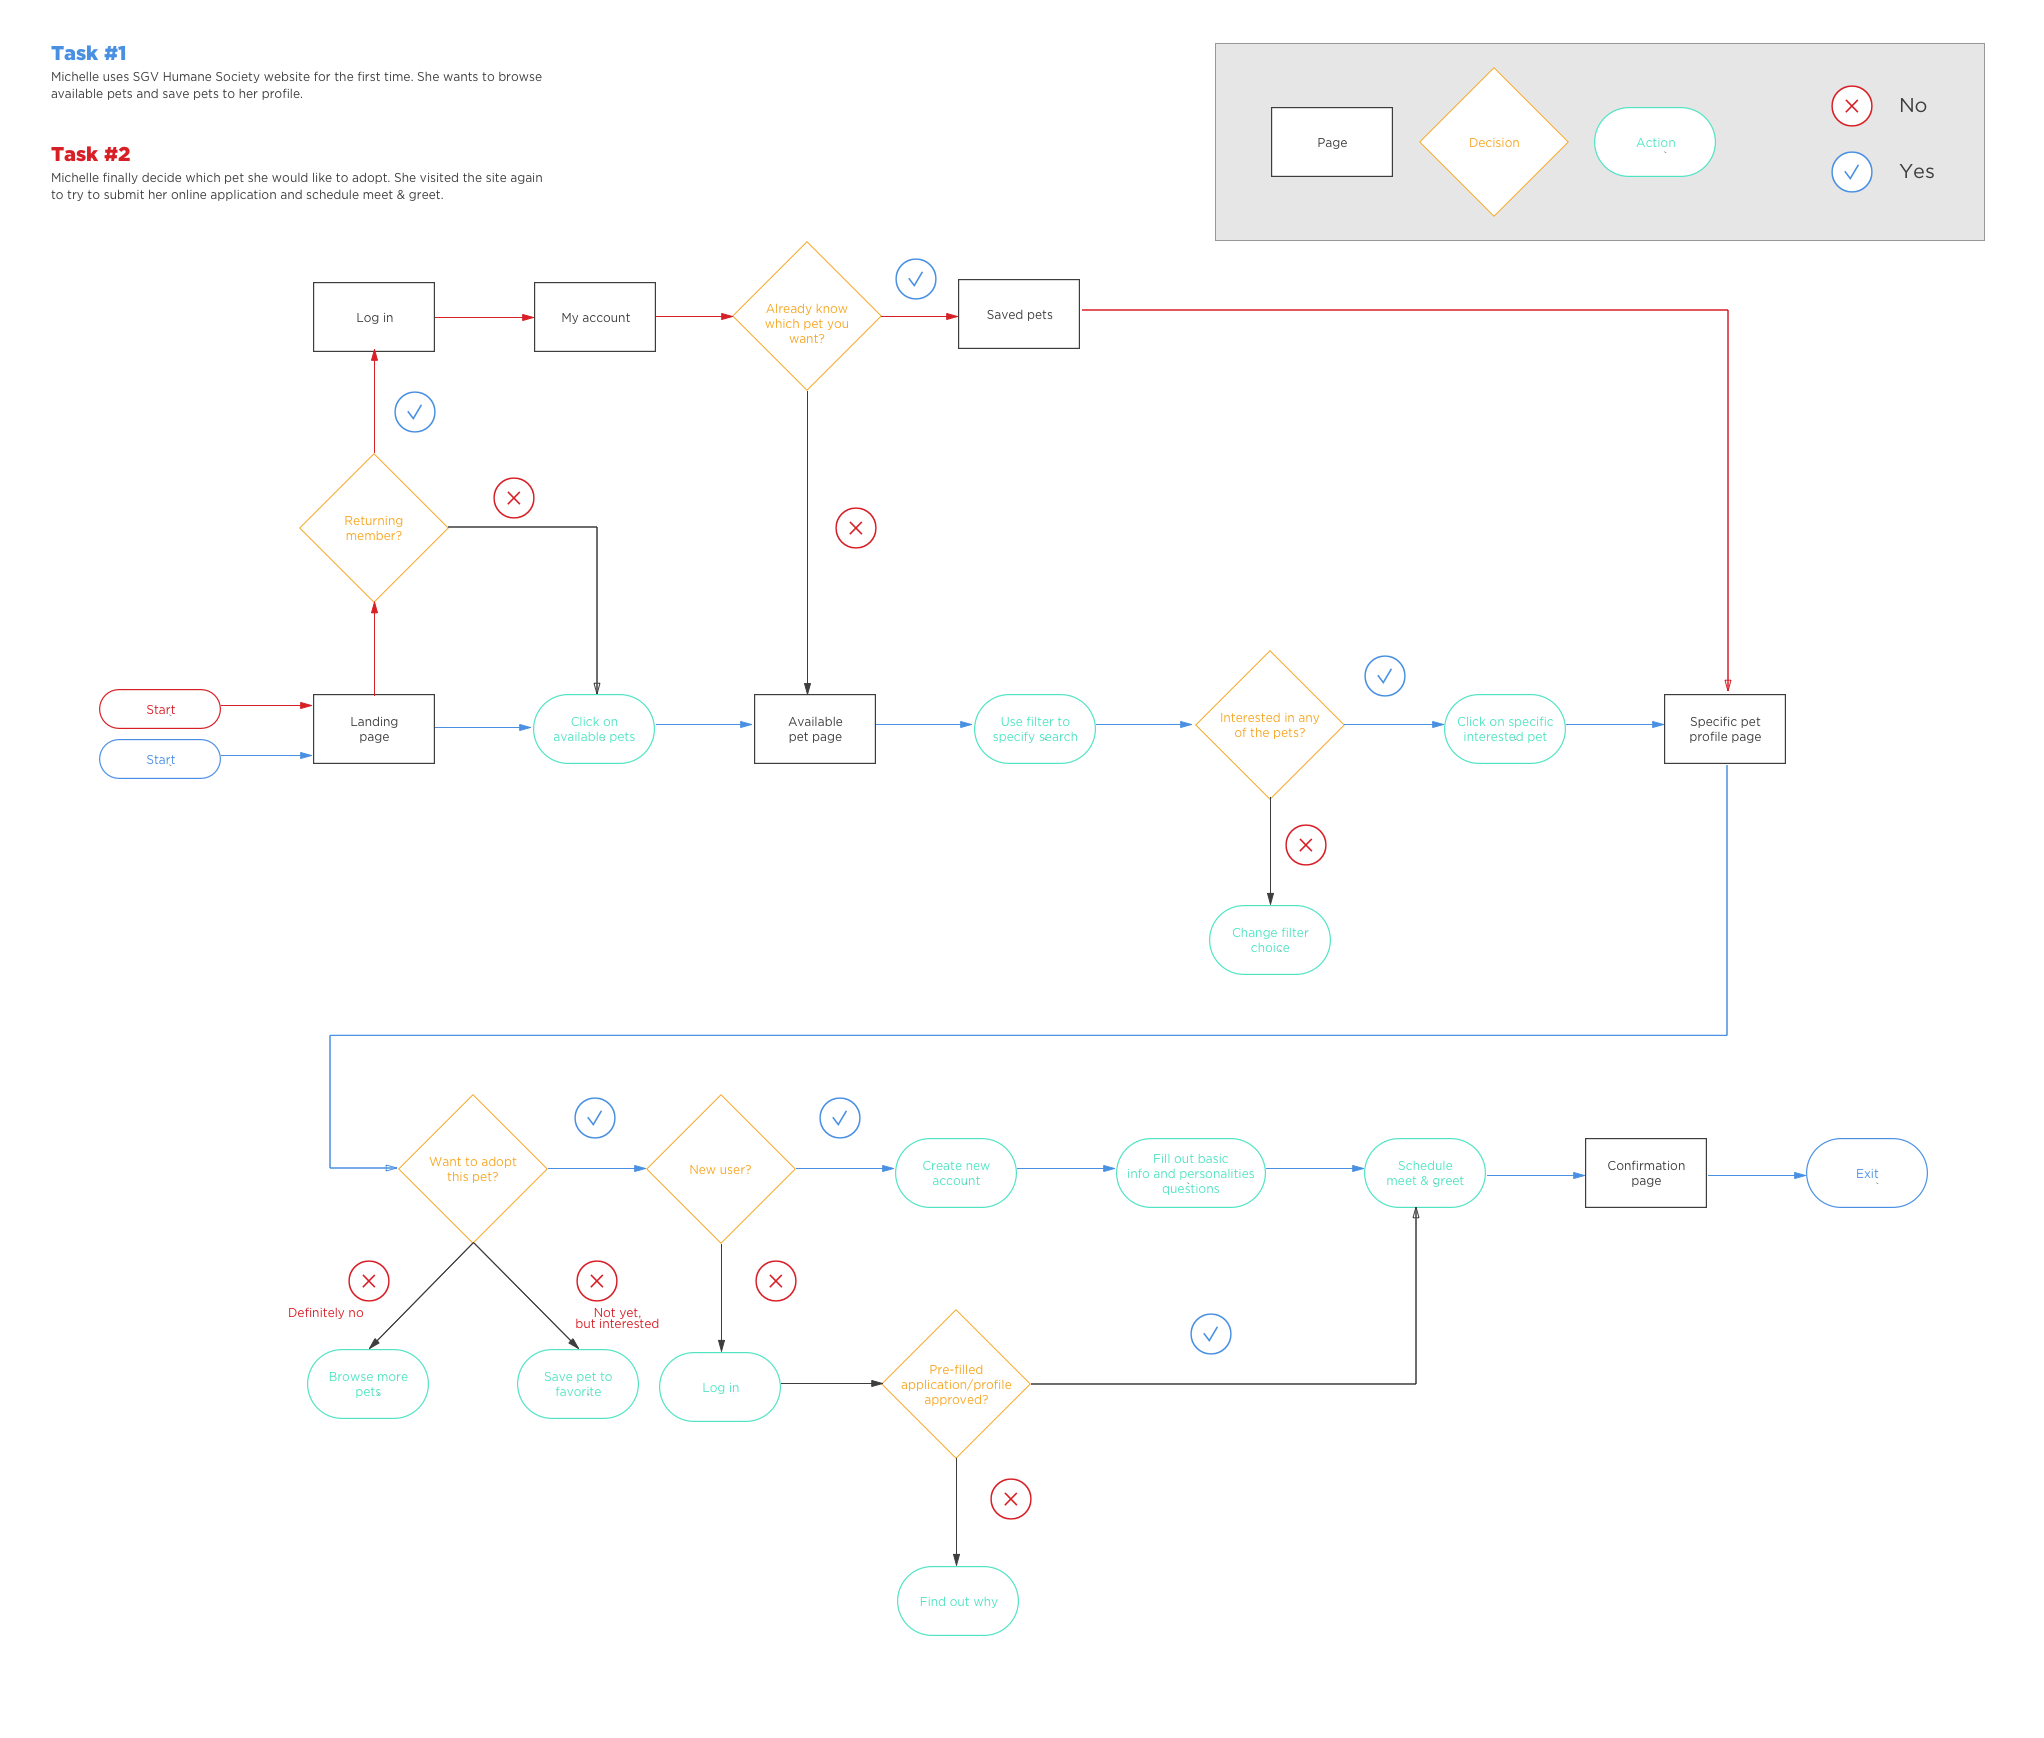 uxa_sgv_user_flow_2.png